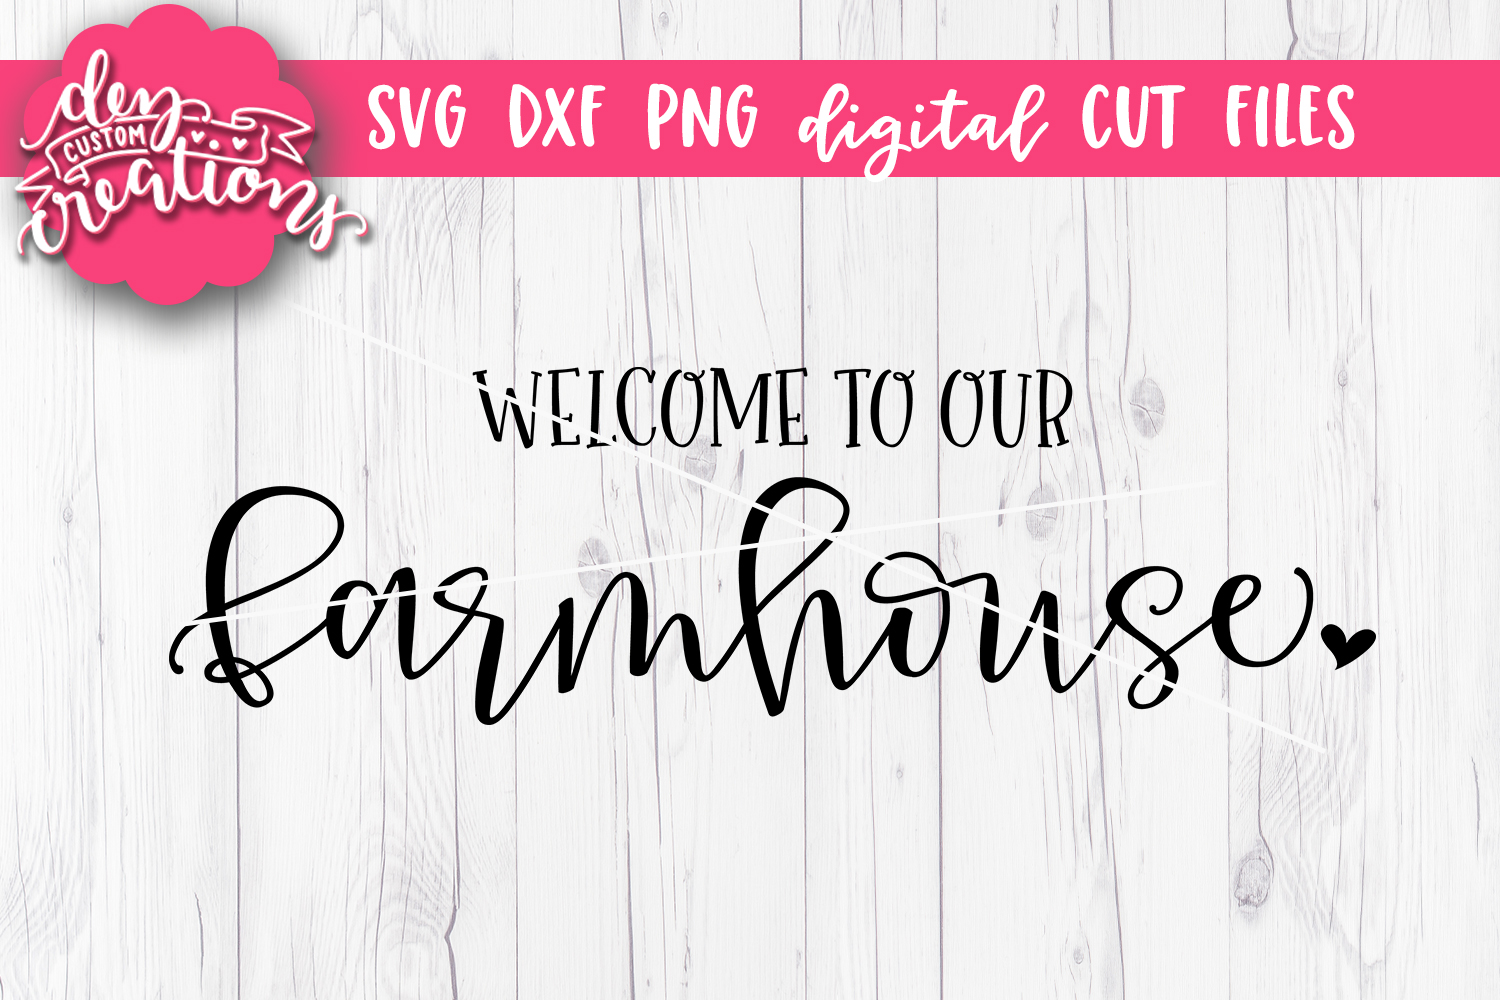 Welcome To Our Farmhouse Svg Dxf Png Cut Files 129289 Svgs Design Bundles